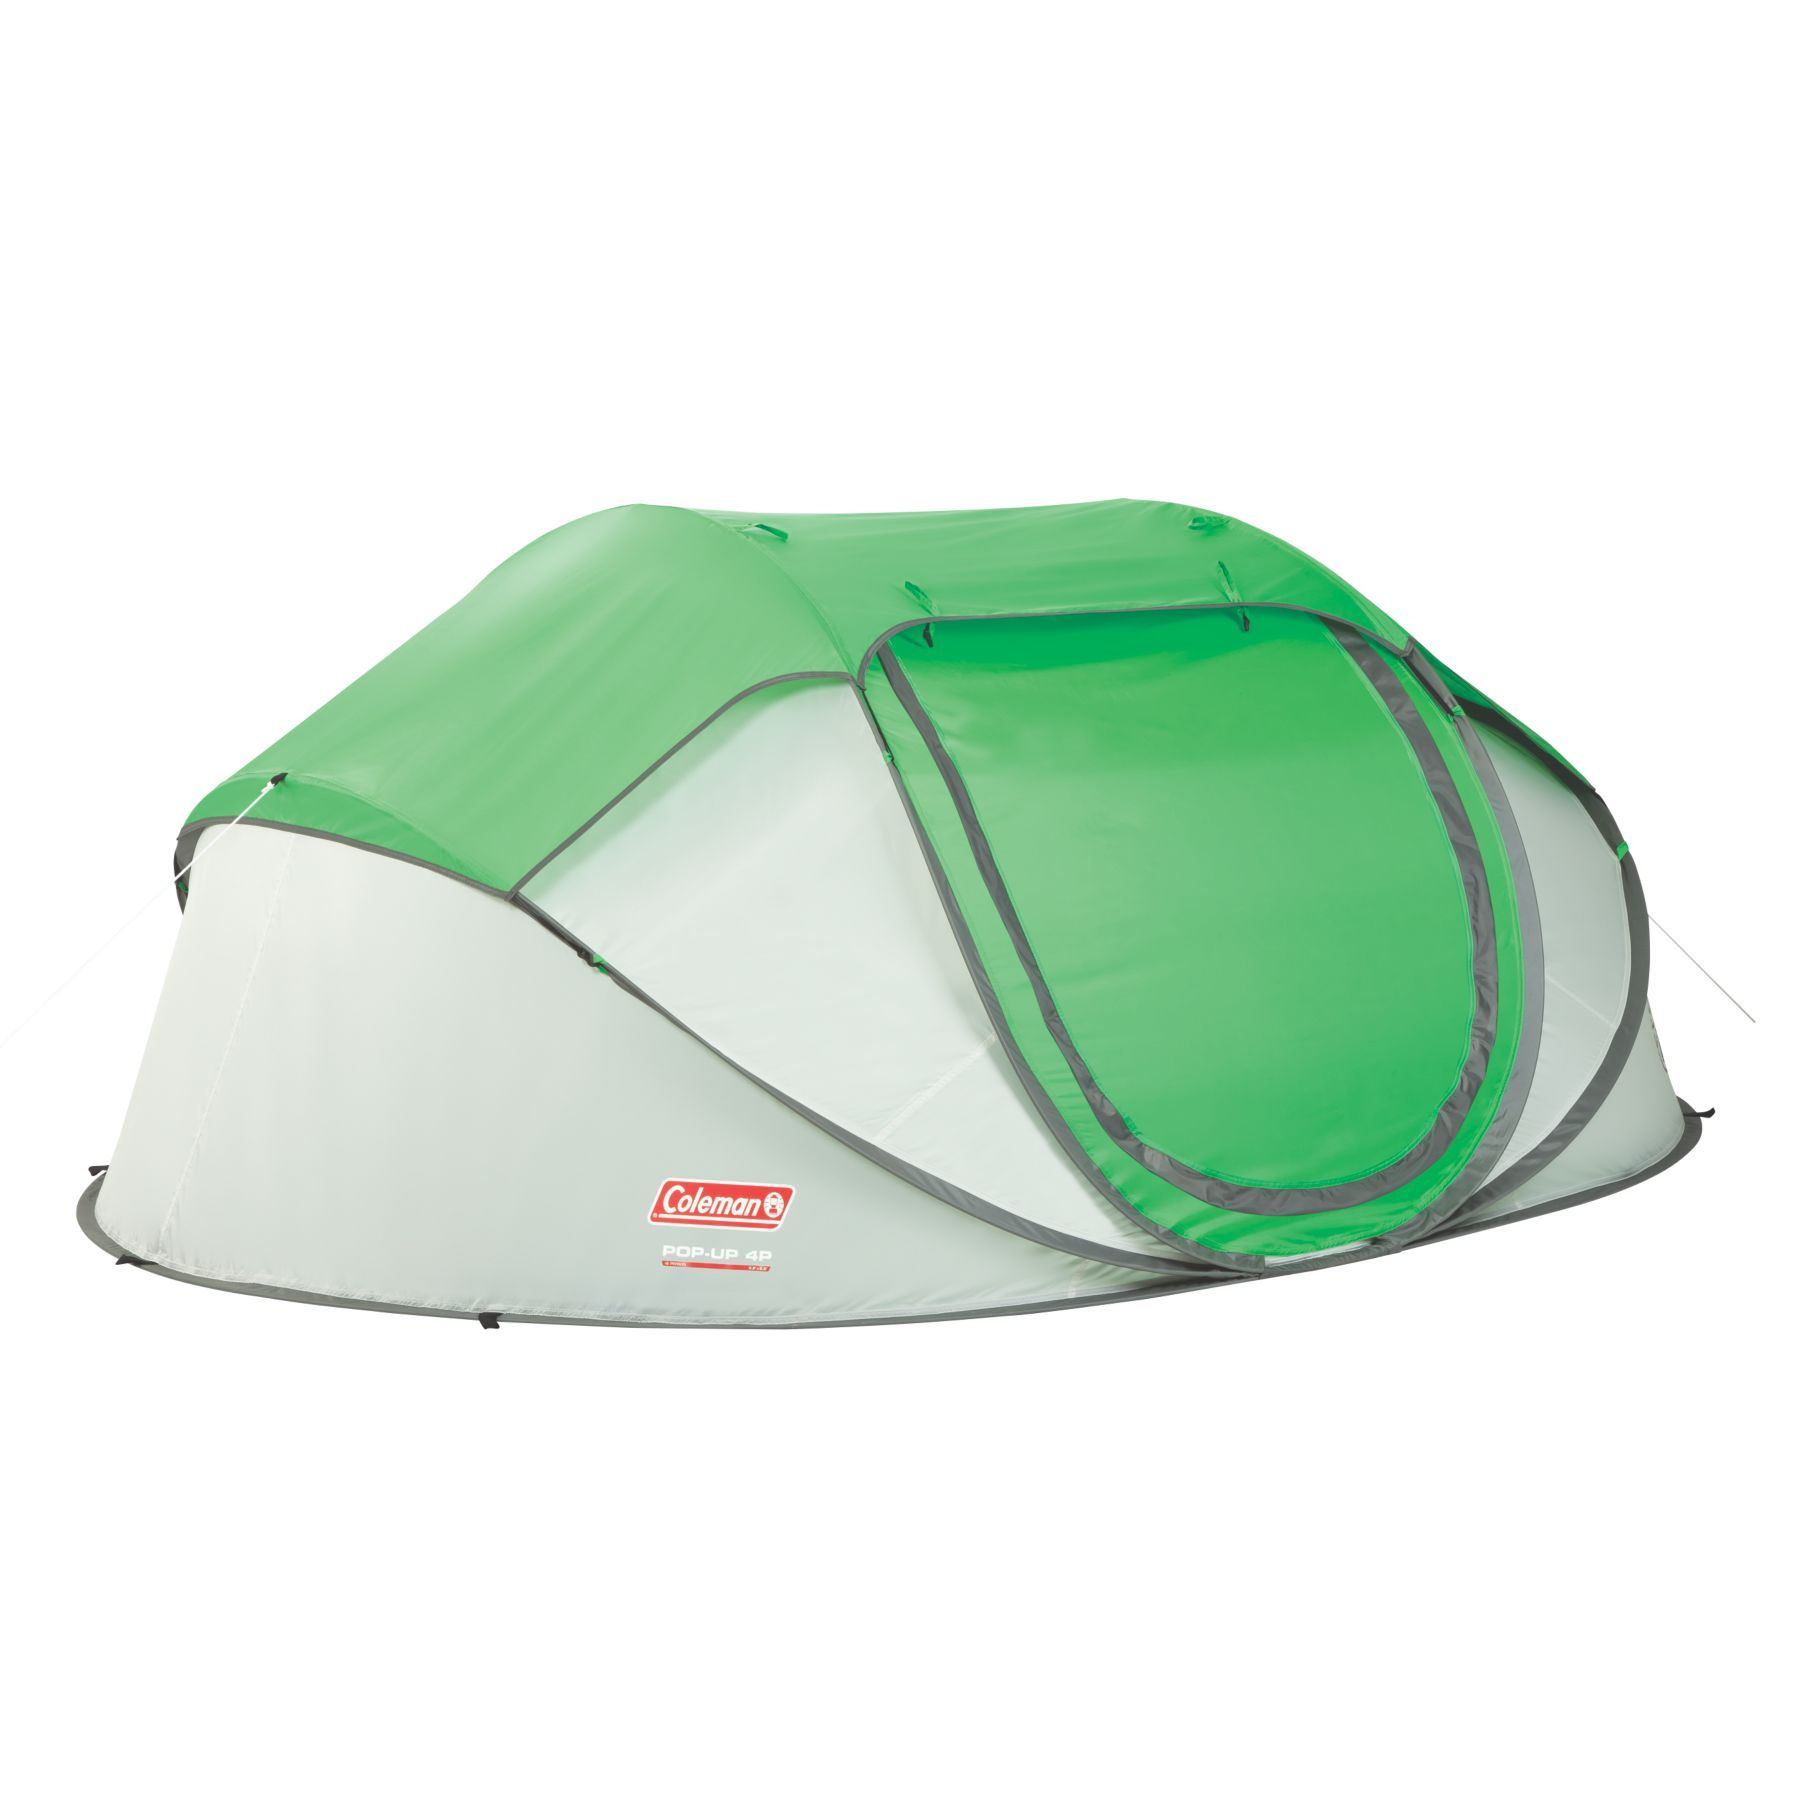 Enjoy More Of Your Festival Experience With A Coleman 4 Person Pop Up Tent Setup Takes Only Ten Second Pop Up Tent Family Tent Camping Best Tents For Camping